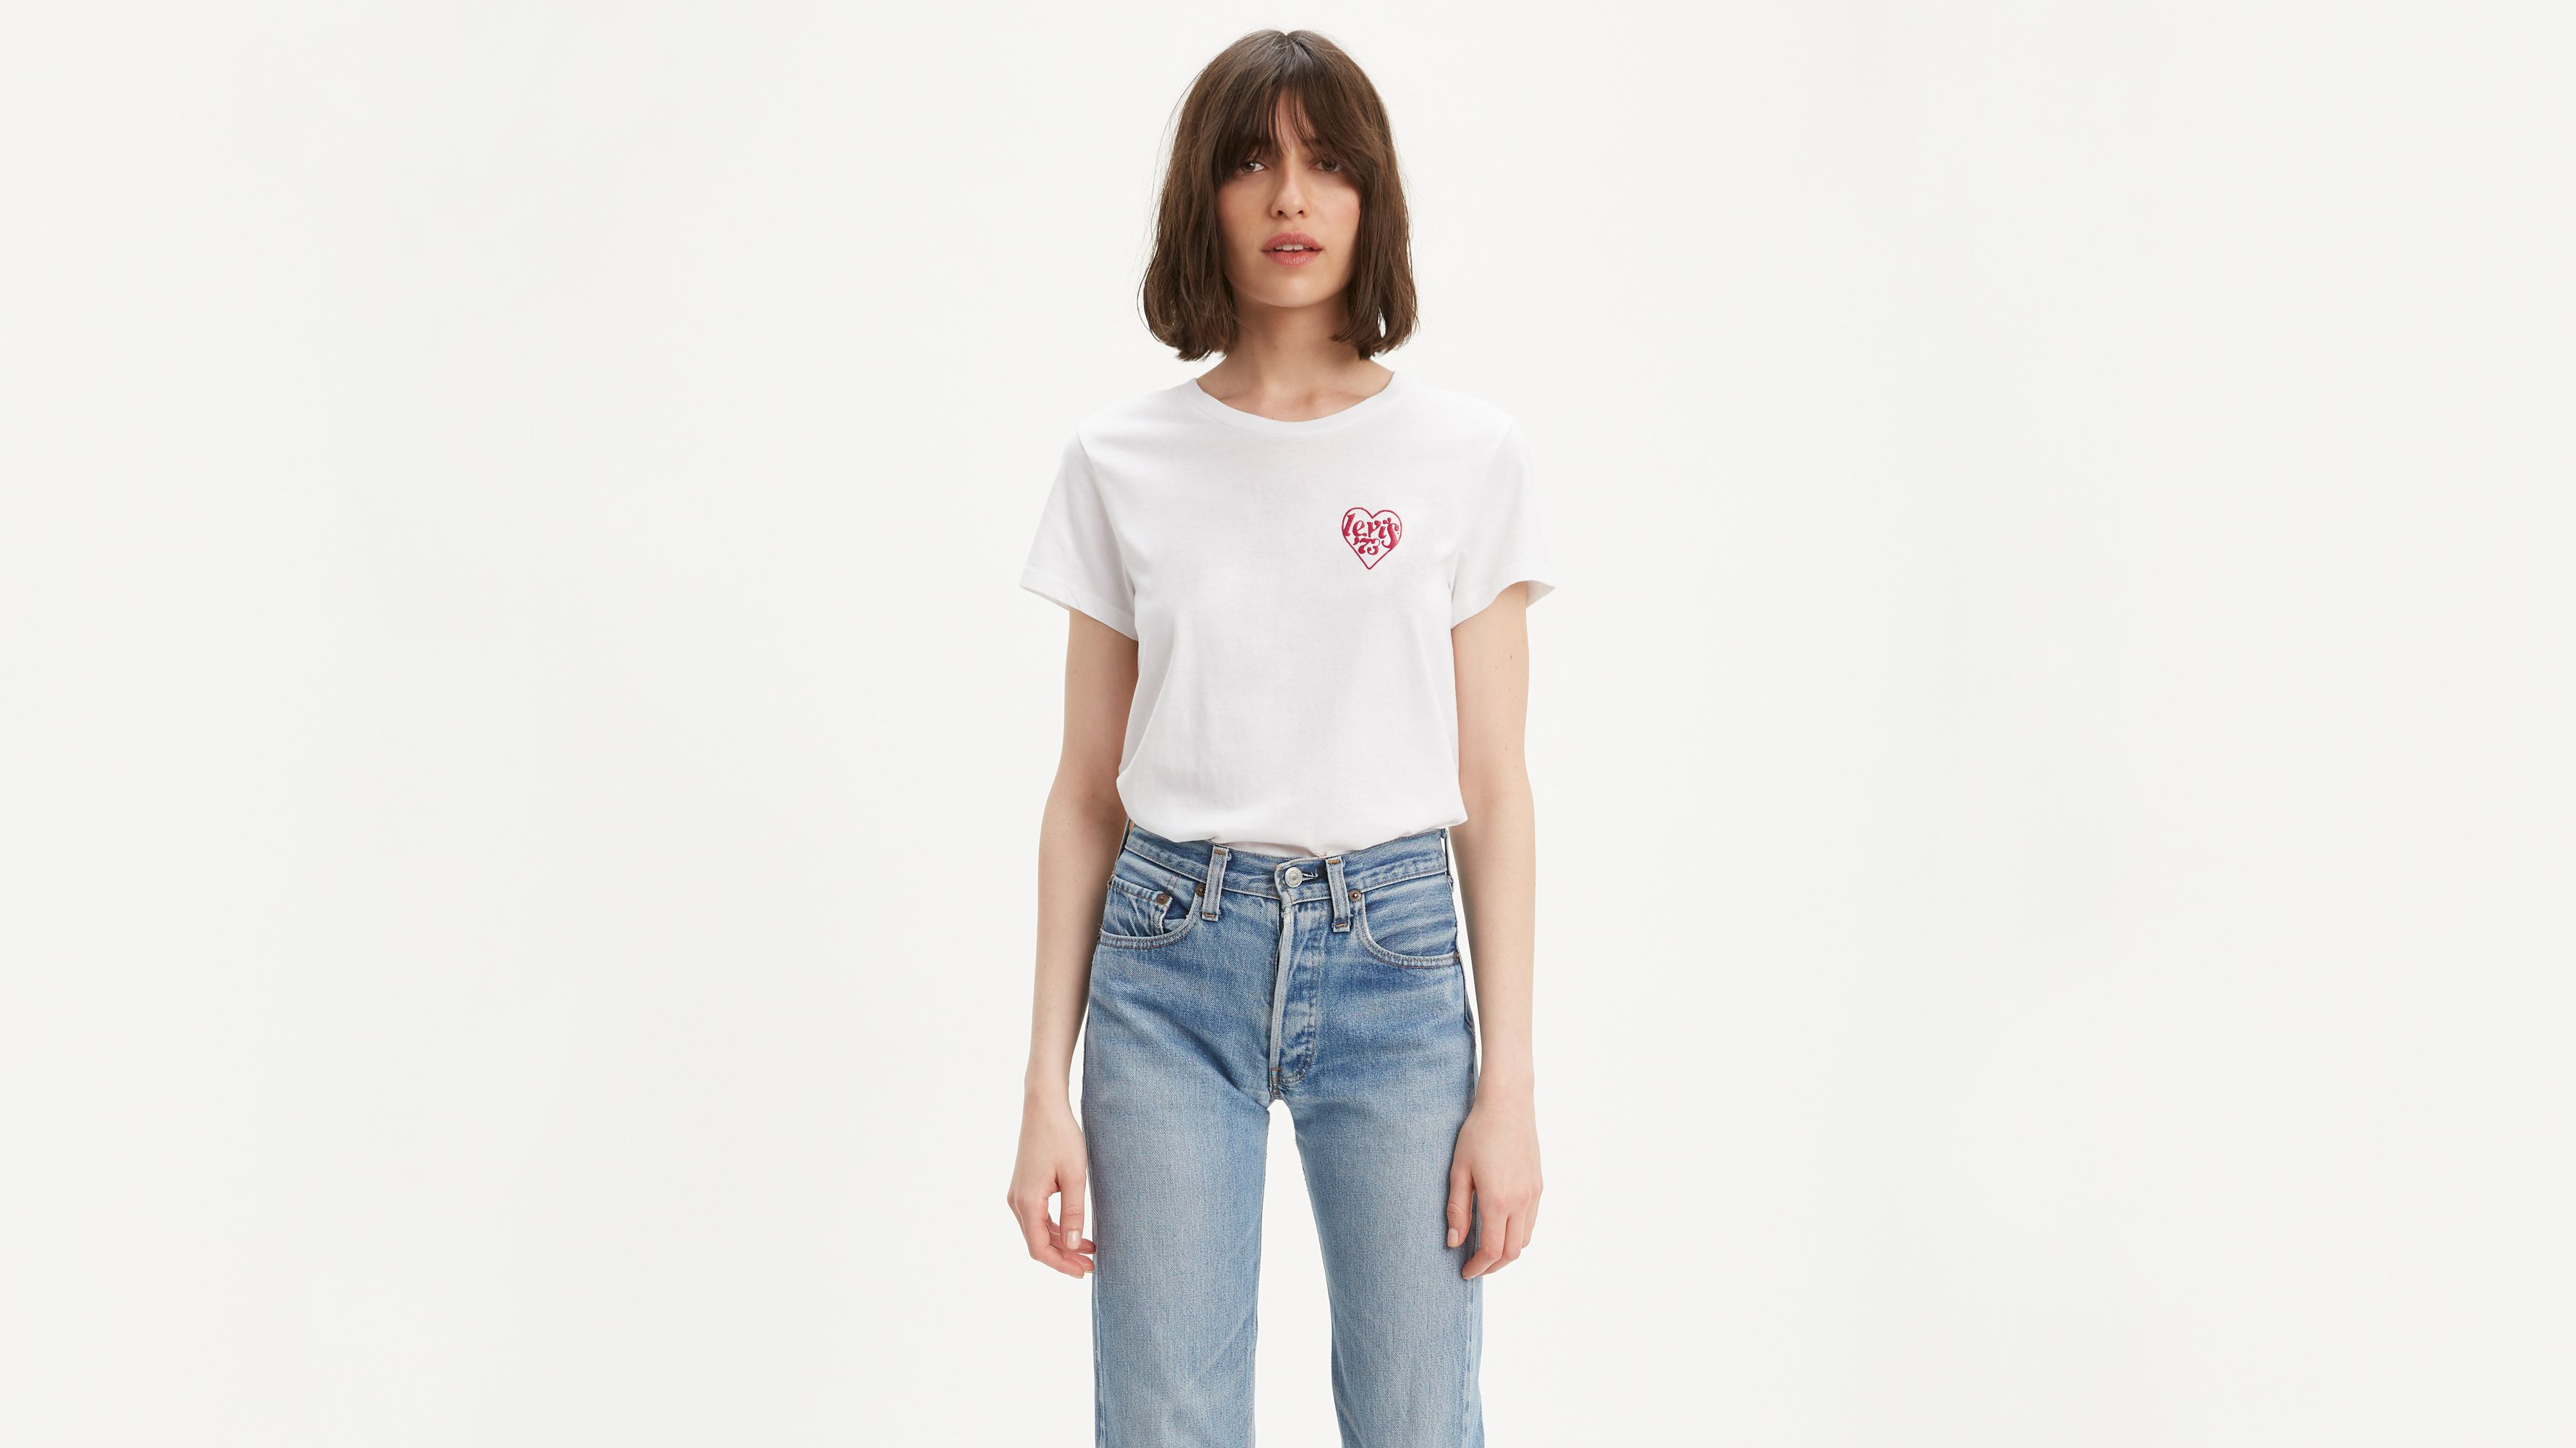 Chest Heart Graphic Tee Shirt